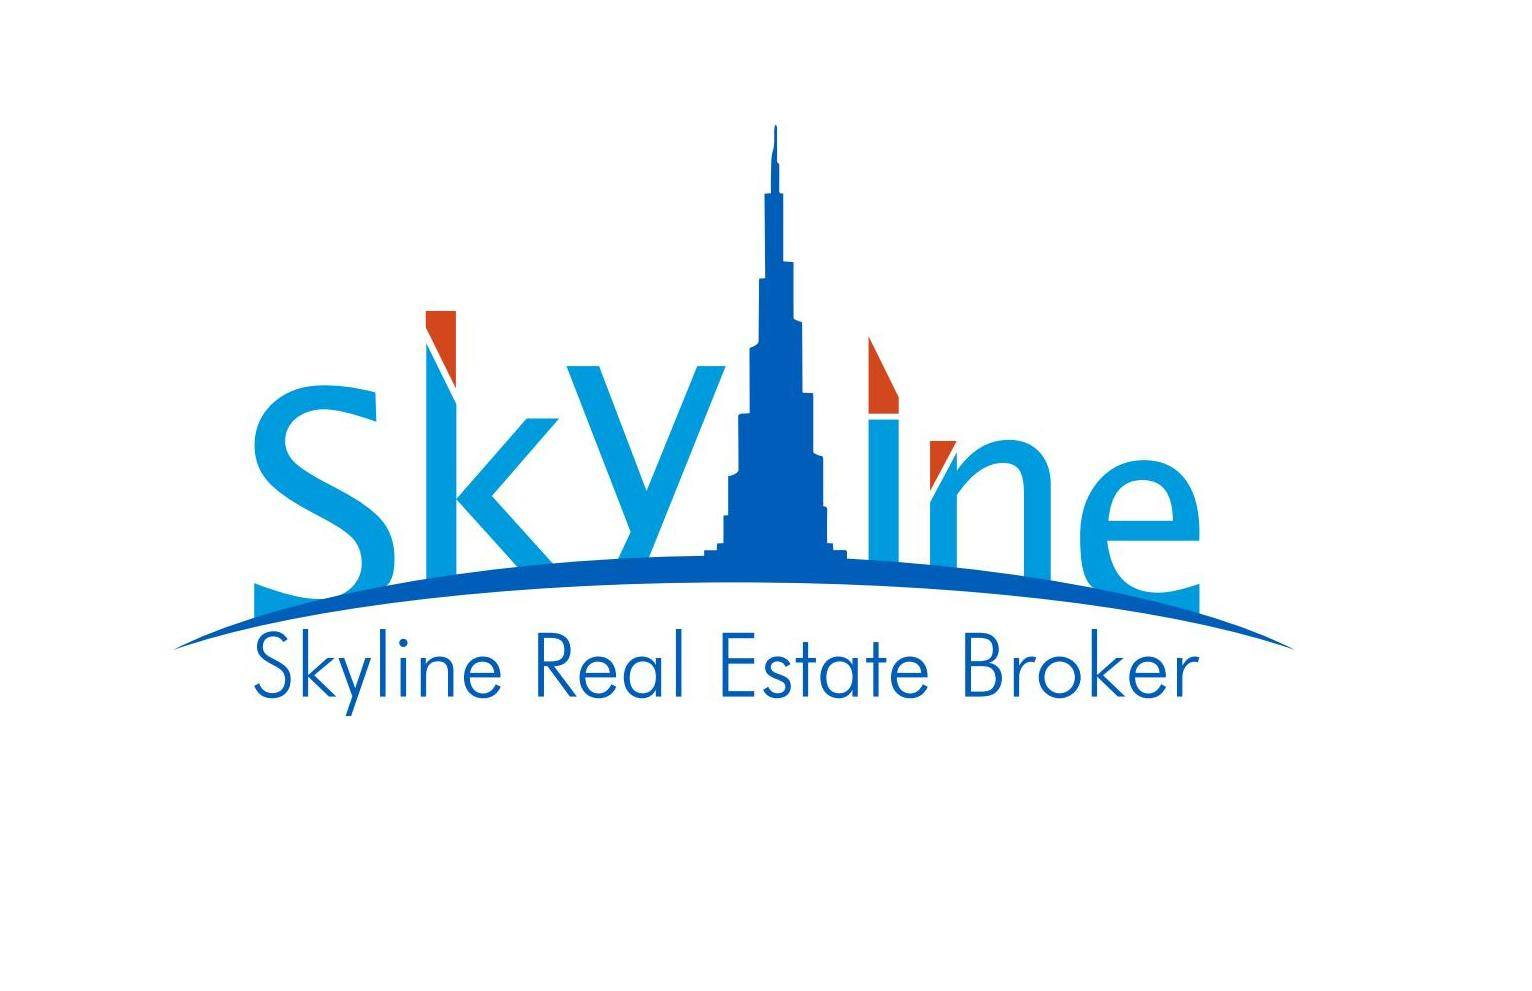 Skyline Real Estate